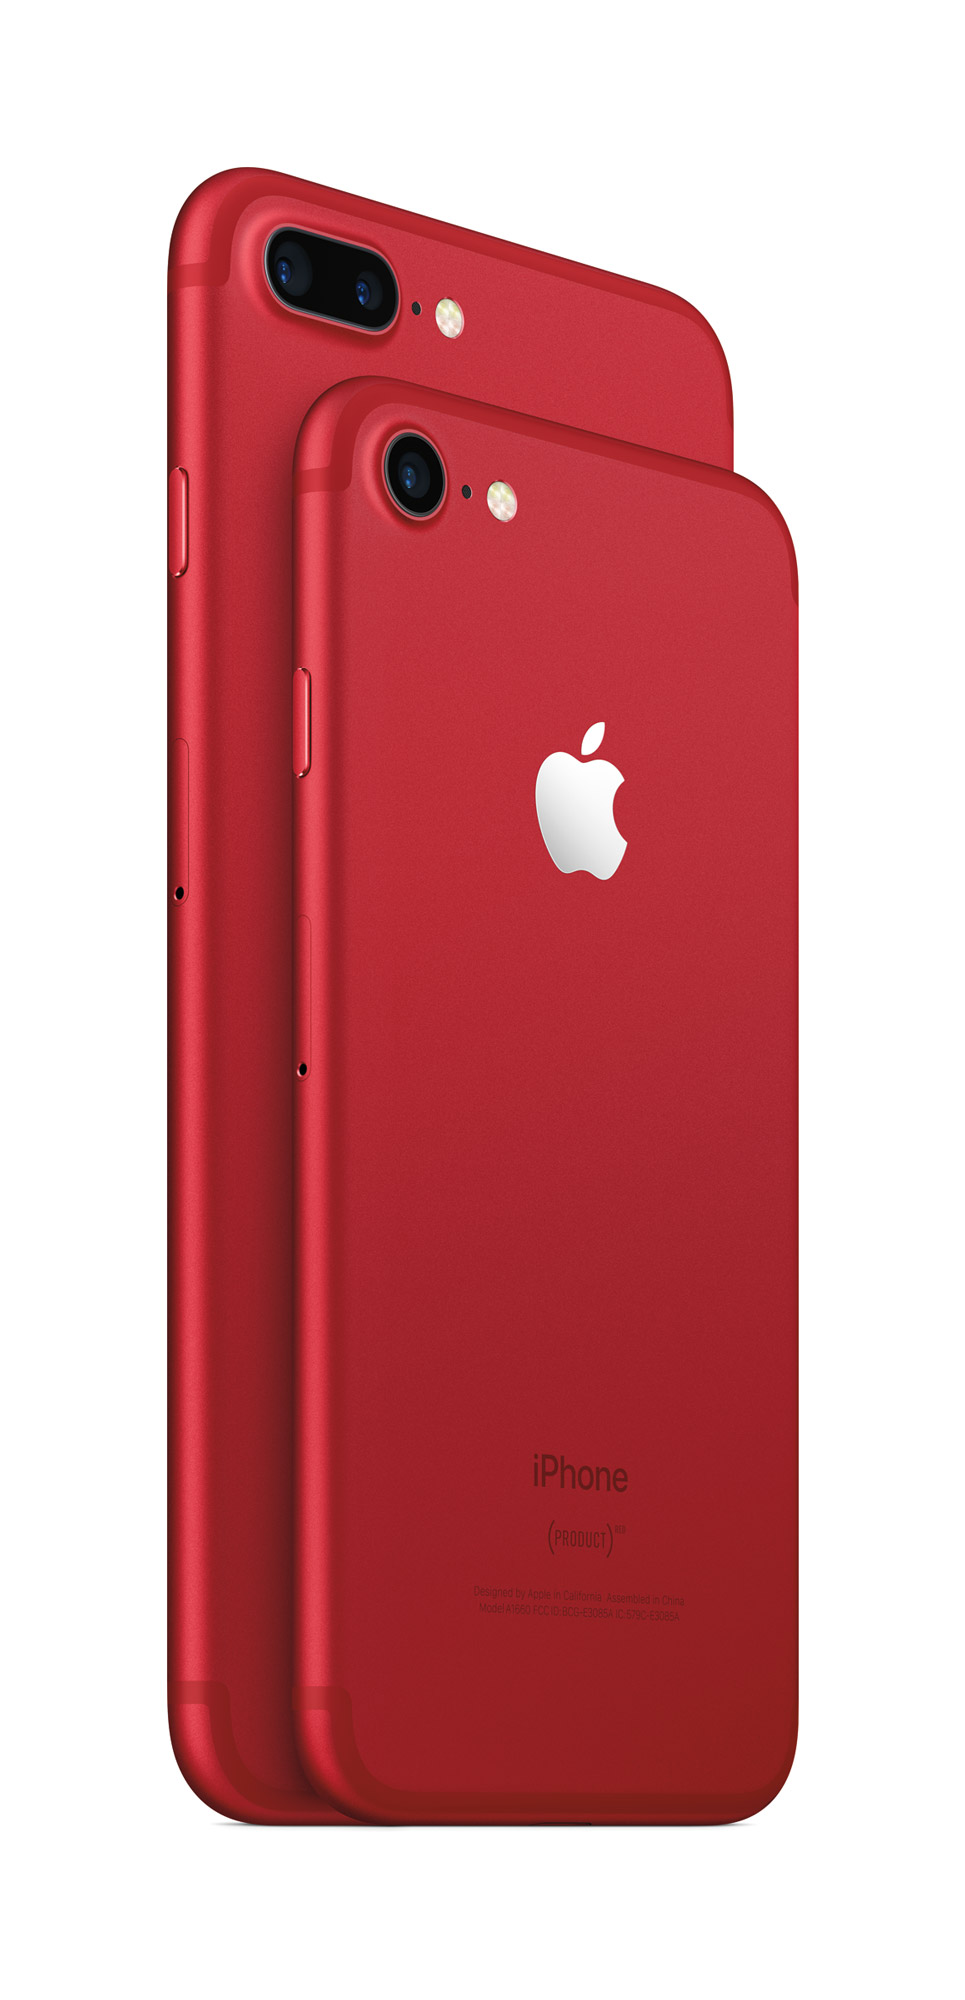 The IPhone 7 And Plus Was First Released Last September Bringing Most Advanced IPhones Ever Both Models Received Upgrades In Their Camera